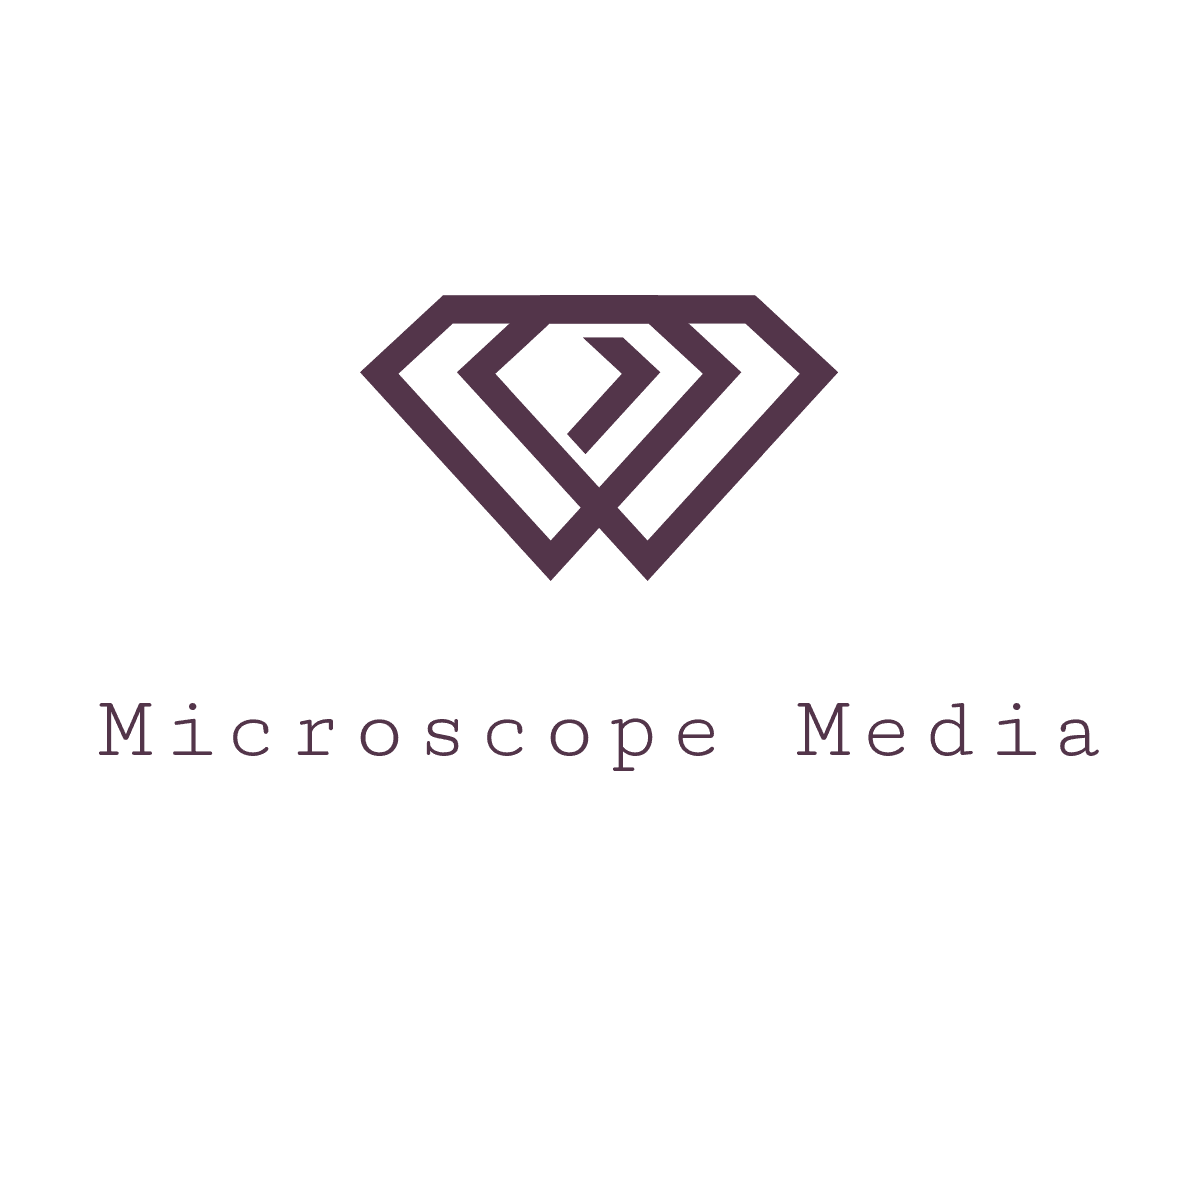 Microscope Media